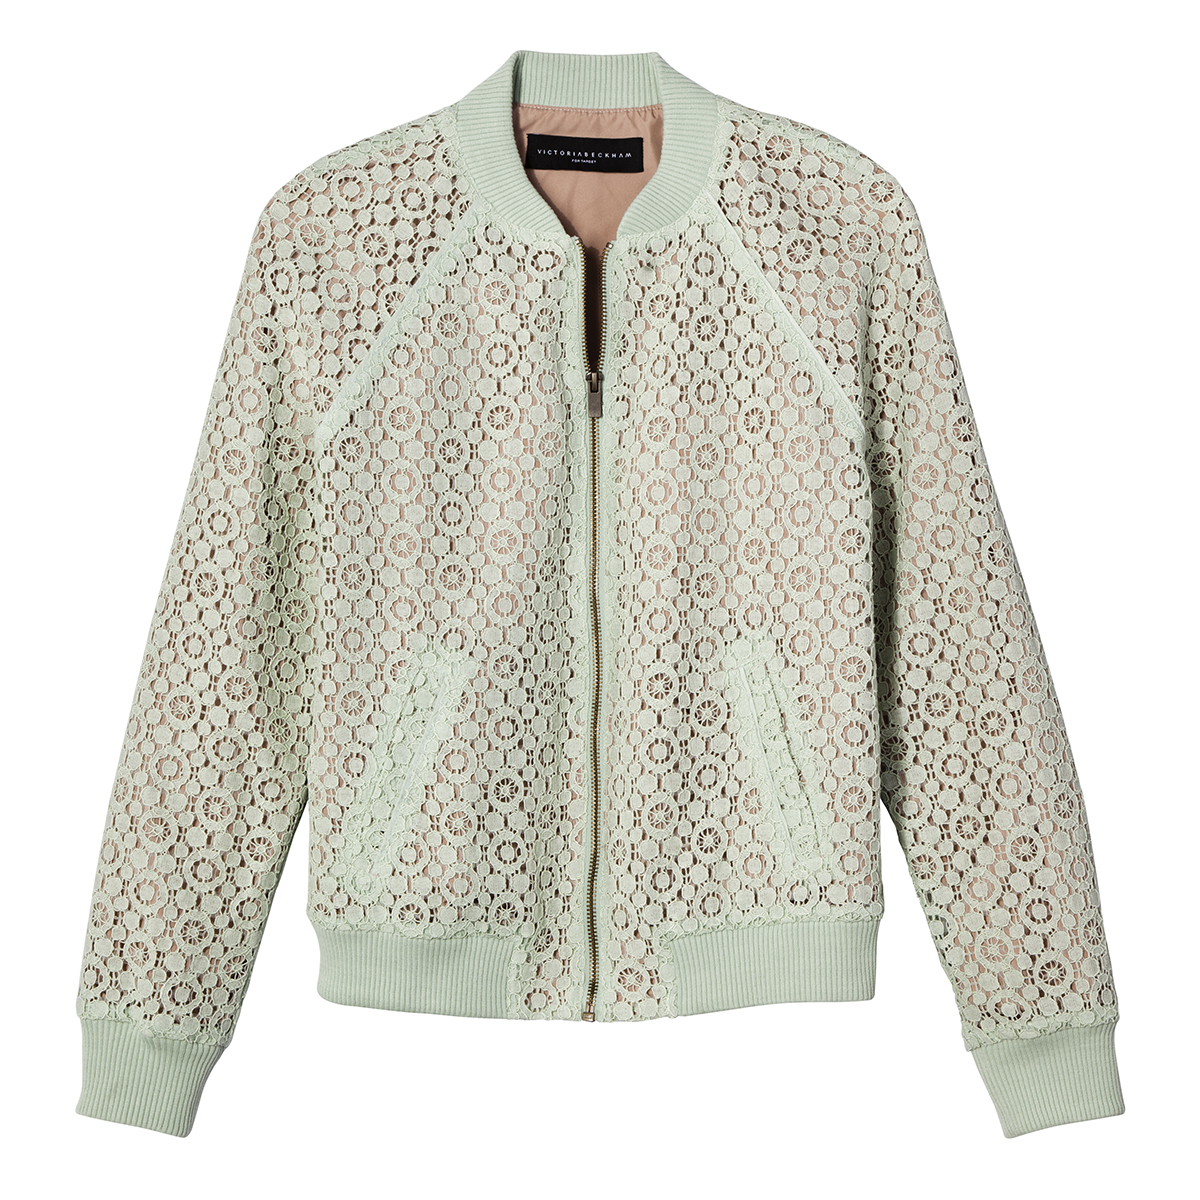 Mint Green Lace Bomber, $35